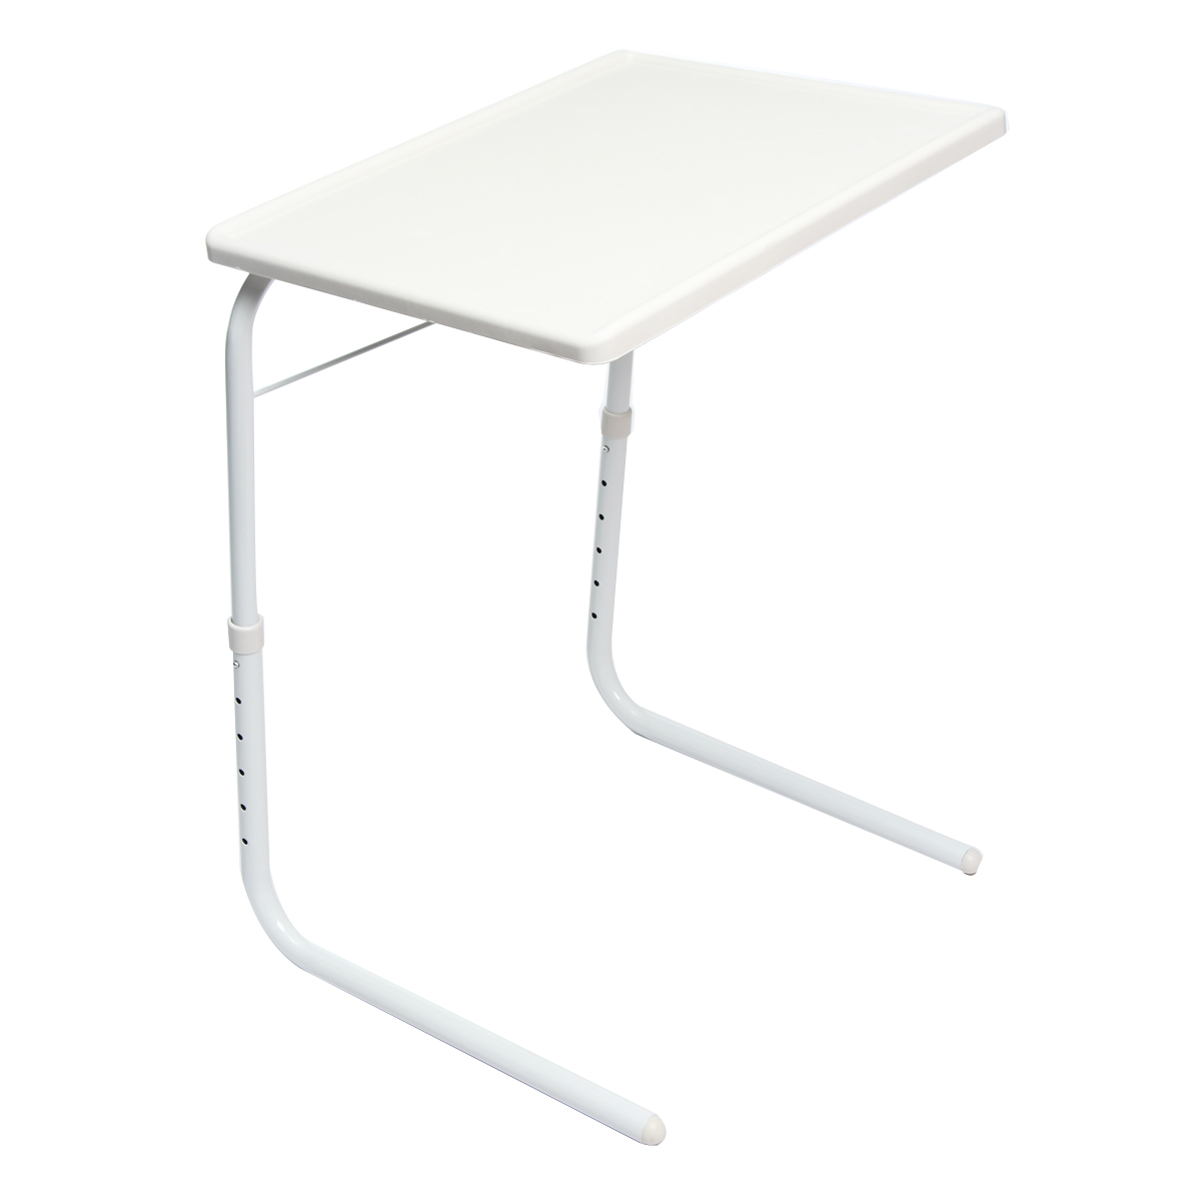 Adjustable Desk Plastic Folding Table Children's Lift Table Dinner Coffee Laptop Stand Bed With Lazy Table Folding